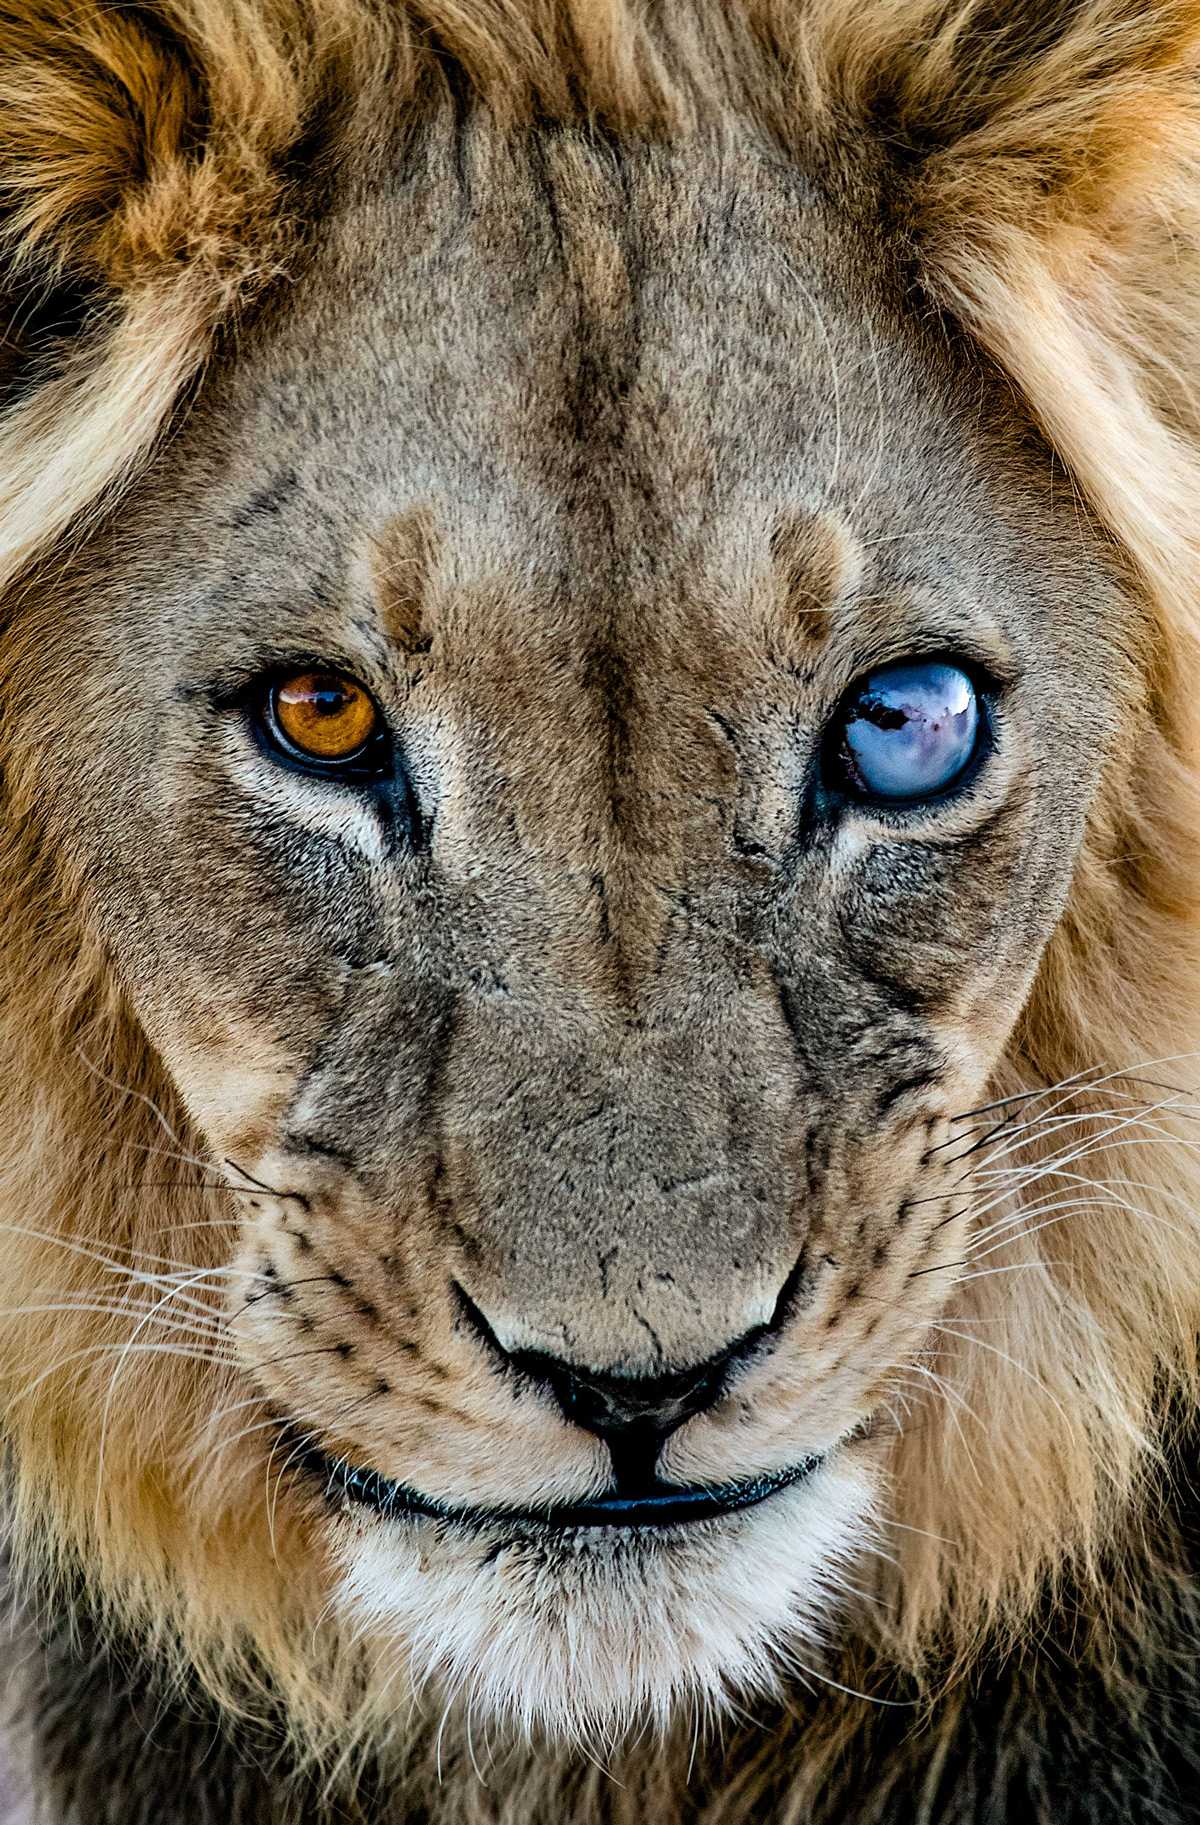 """Sun and moon"" – a lion, blind in one eye, in Kgalagadi Transfrontier Park, South Africa © Ernest Porter"